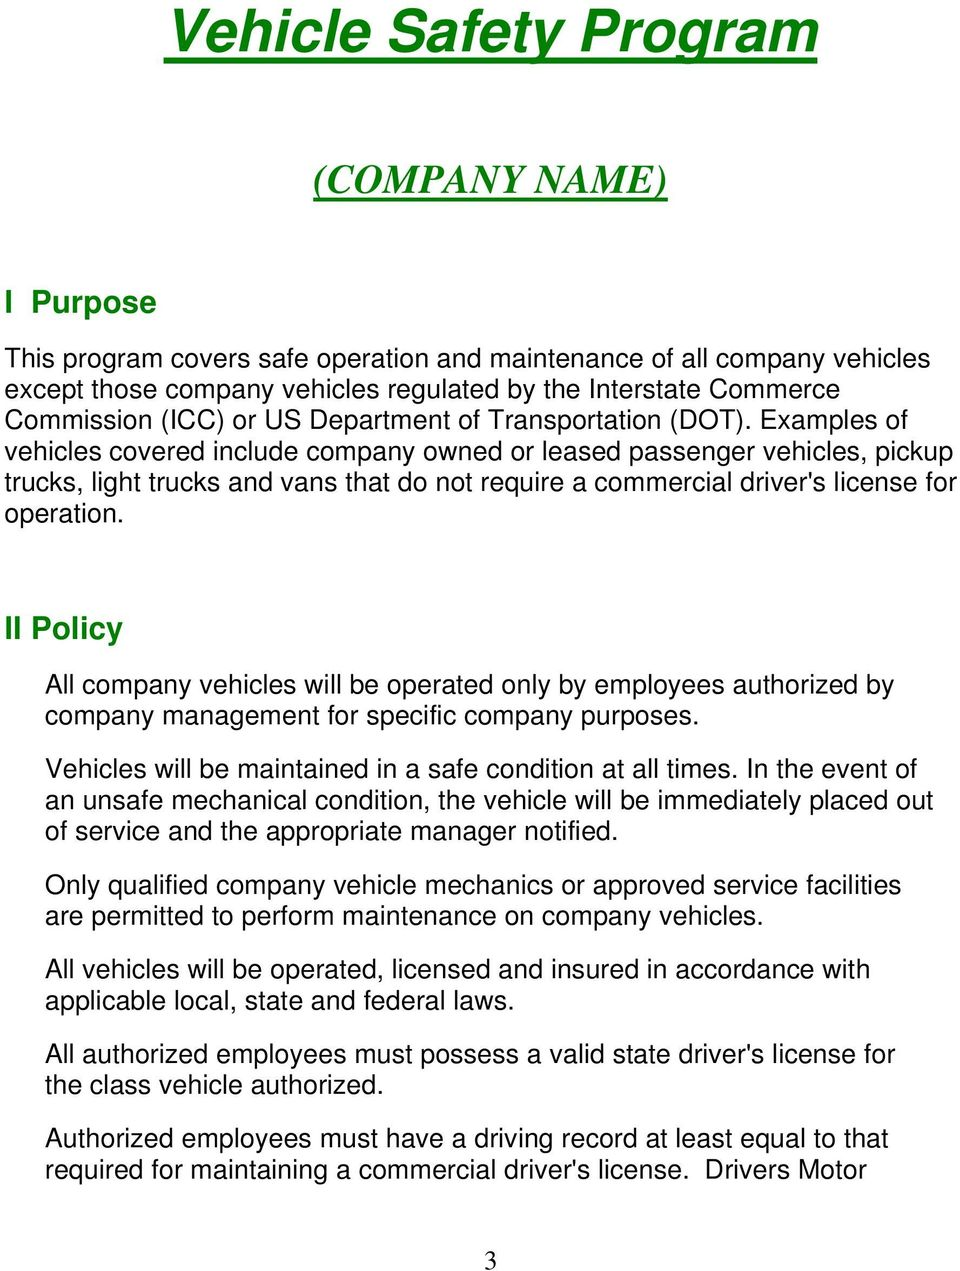 Examples of vehicles covered include company owned or leased passenger vehicles, pickup trucks, light trucks and vans that do not require a commercial driver's license for operation.